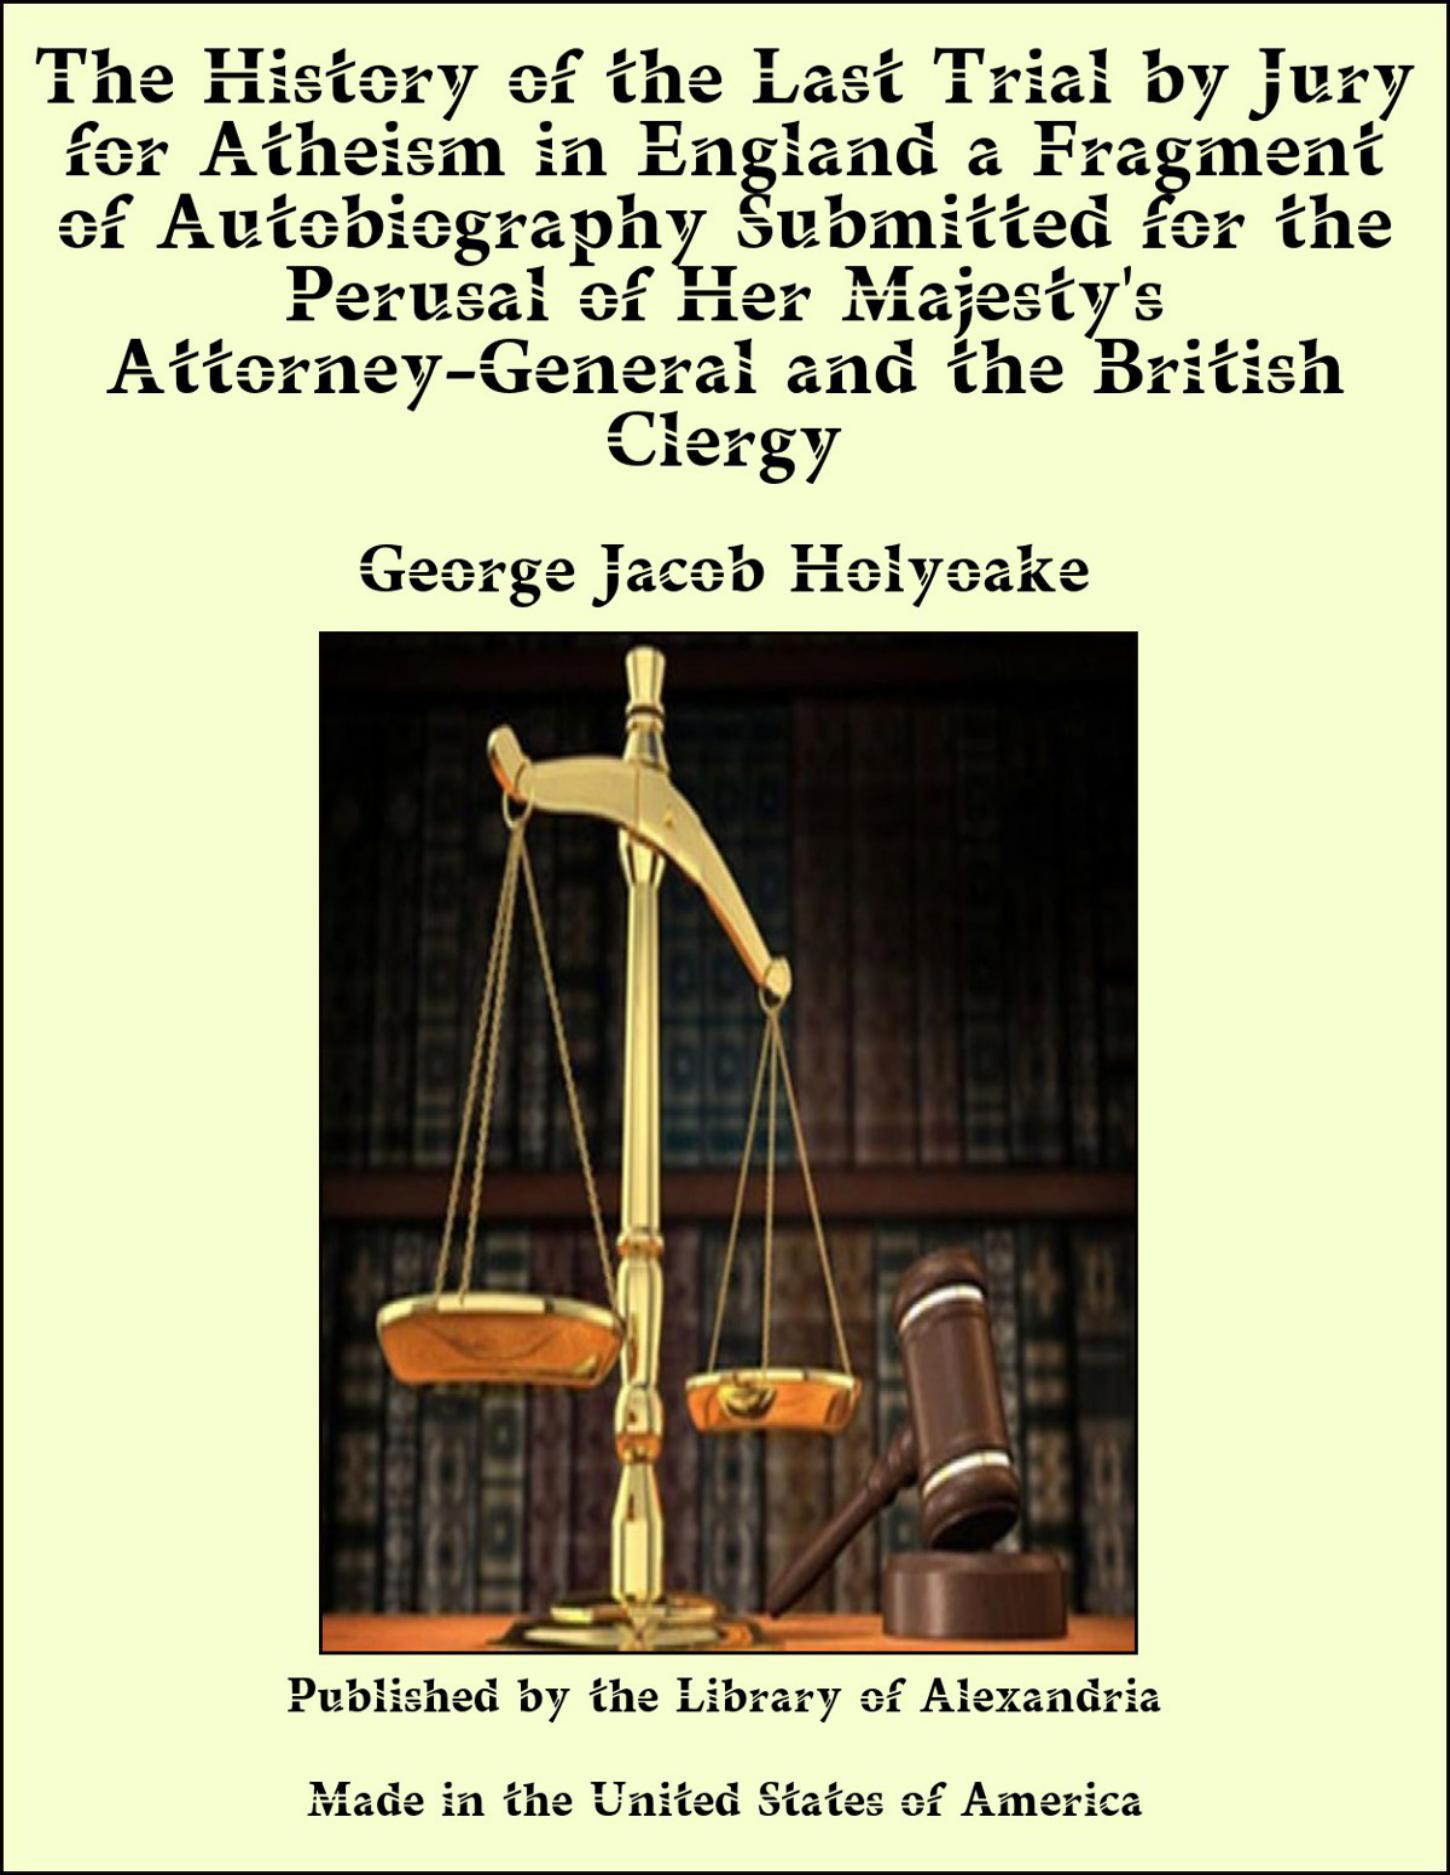 George Jacob Holyoake - The History of the Last Trial by Jury for Atheism in England a Fragment of Autobiography Submitted for the Perusal of Her Majesty's Attorney-General and the British Clergy